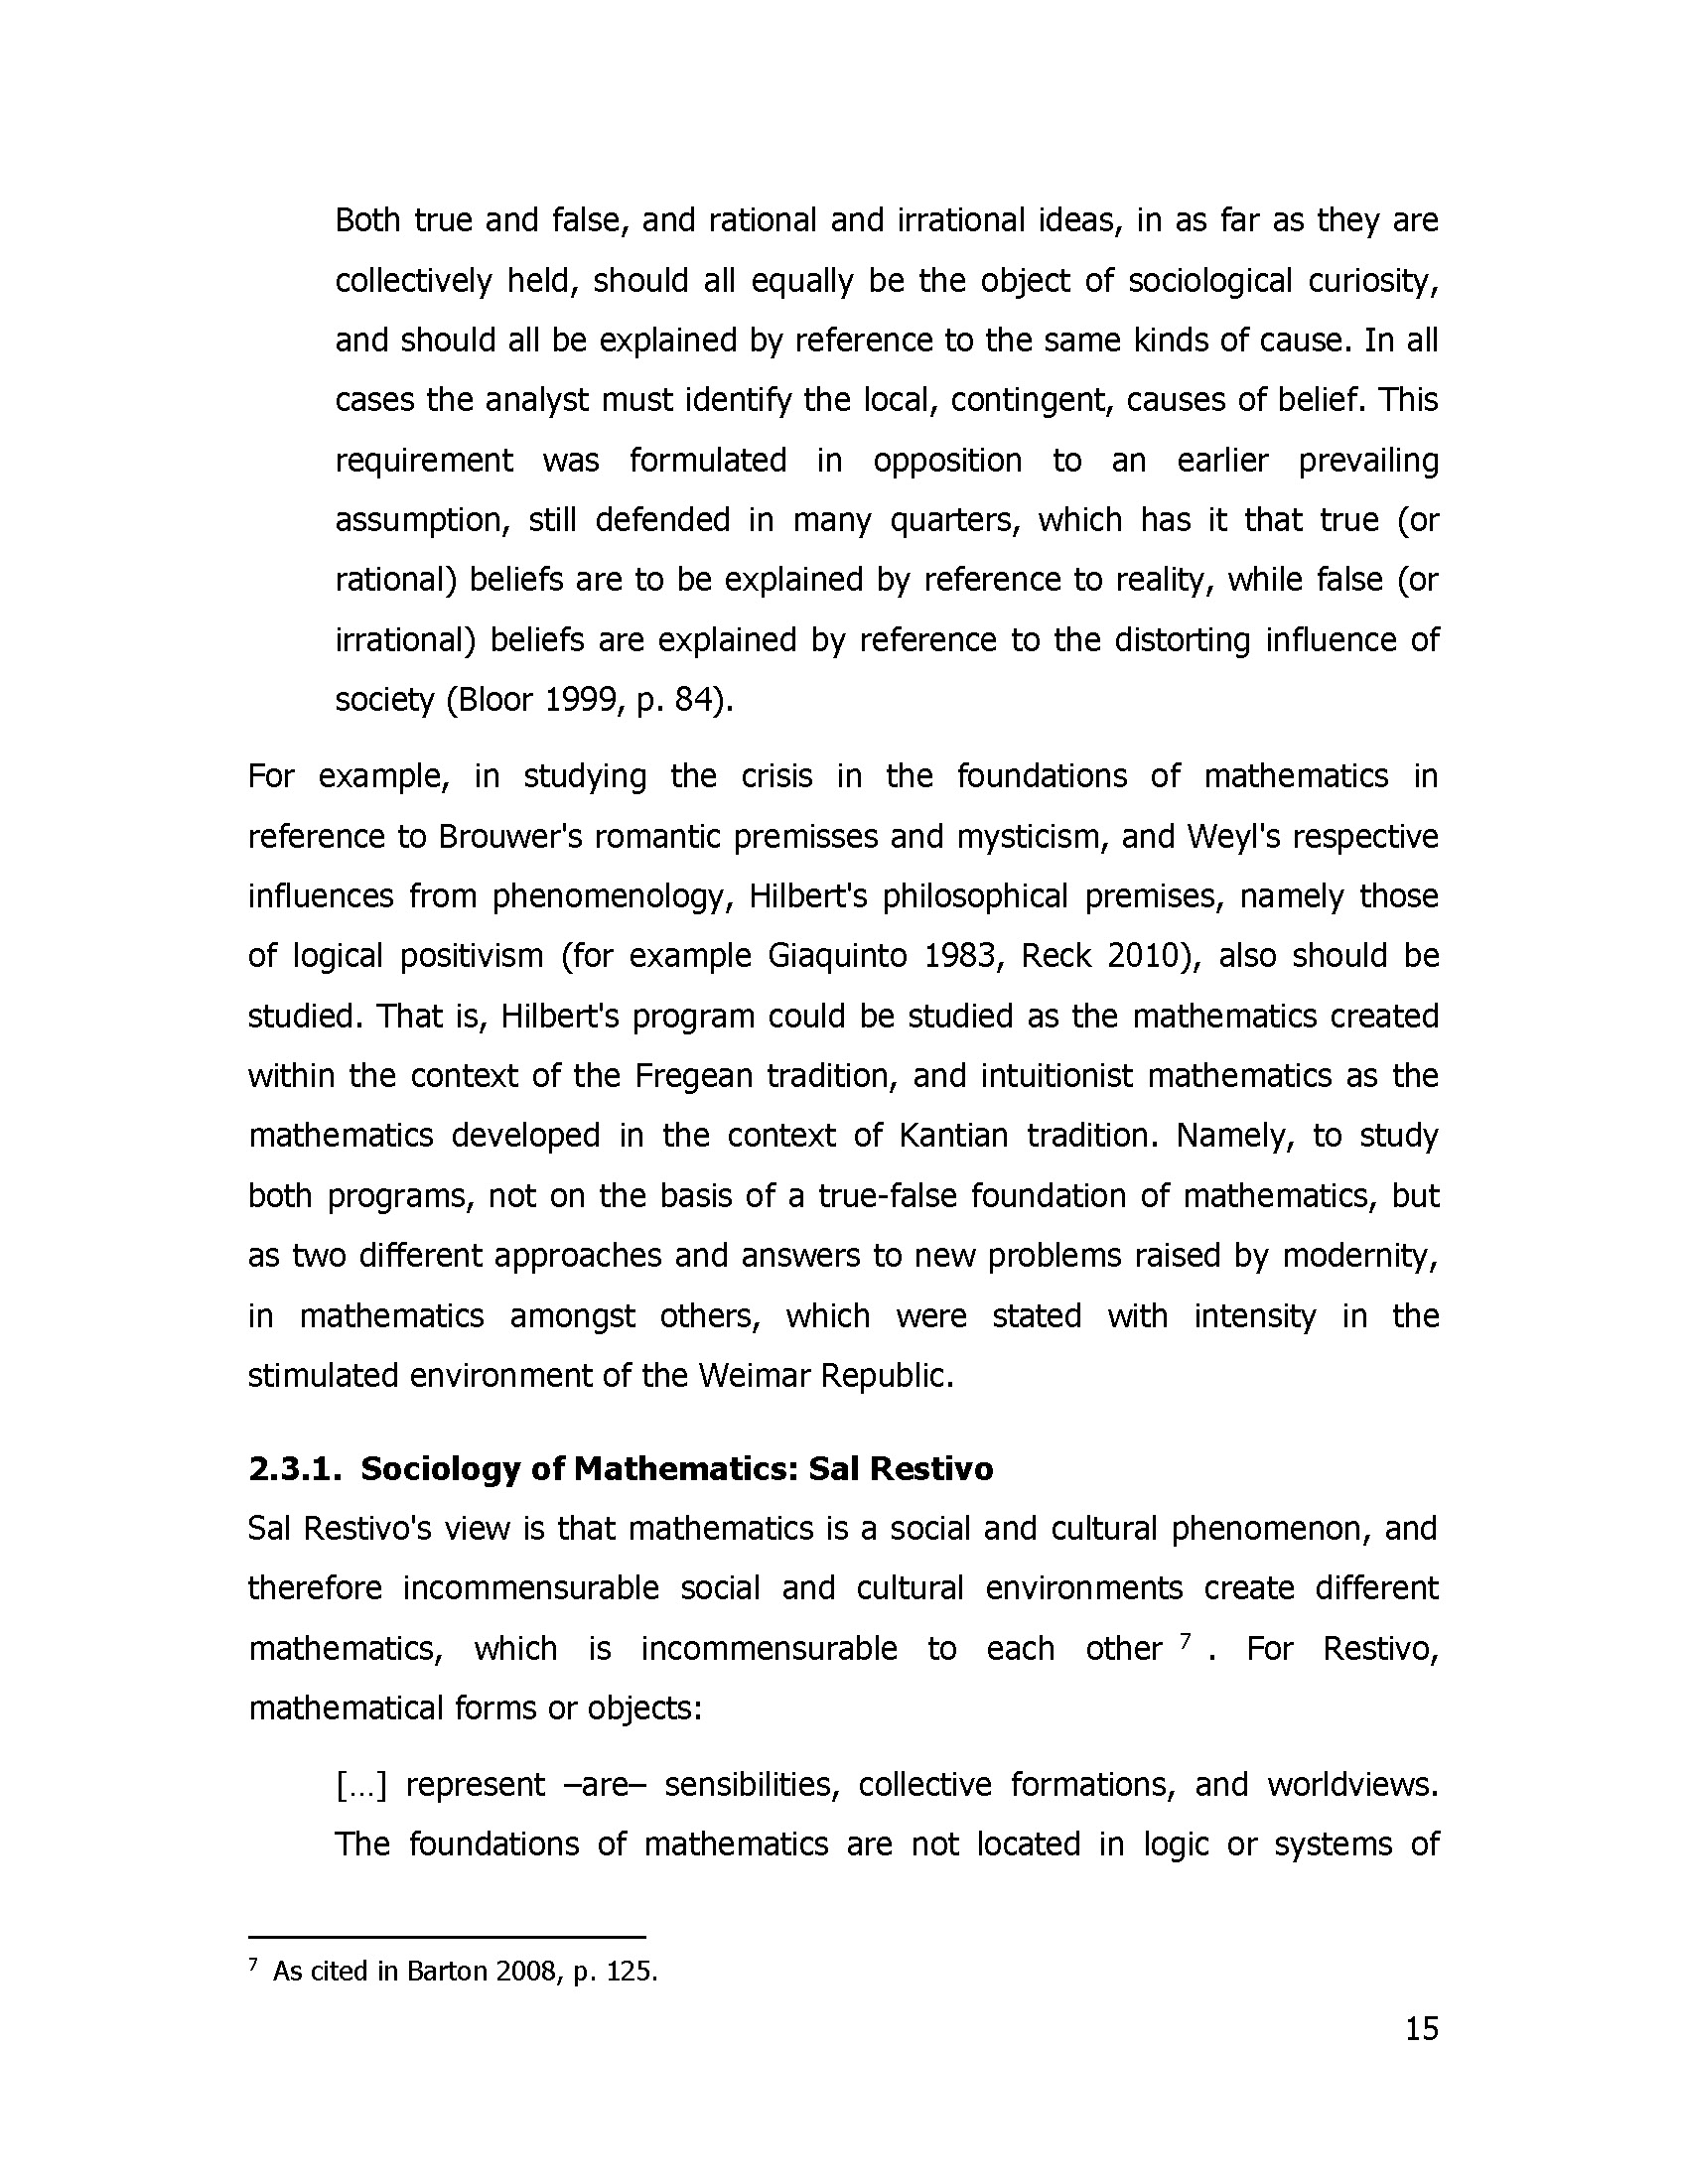 Timpilis, Dimitris (2011) Social and Cultural Approaches to the New Crisis in the Foundations of Mathematics, L. E. J. Brouwer's Free Will versus Leibniz's Dream_Page_16.jpg